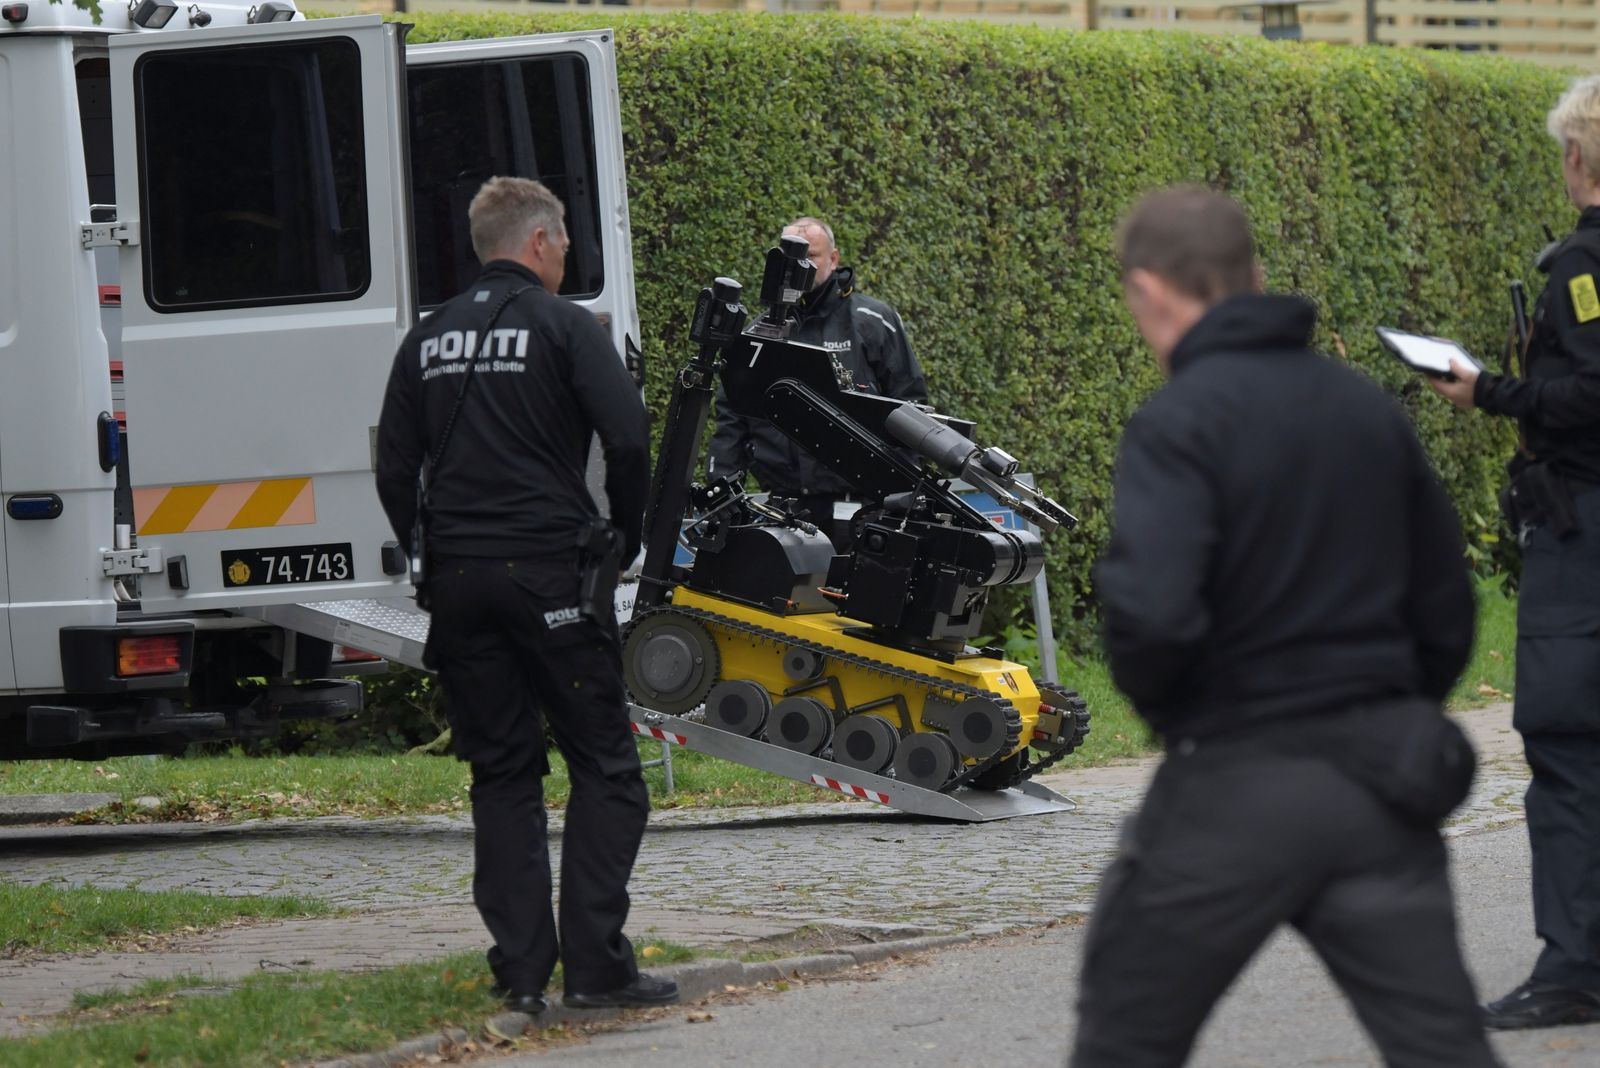 Police officers are seen as Peter Madsen is surrounded by the police in Albertslund